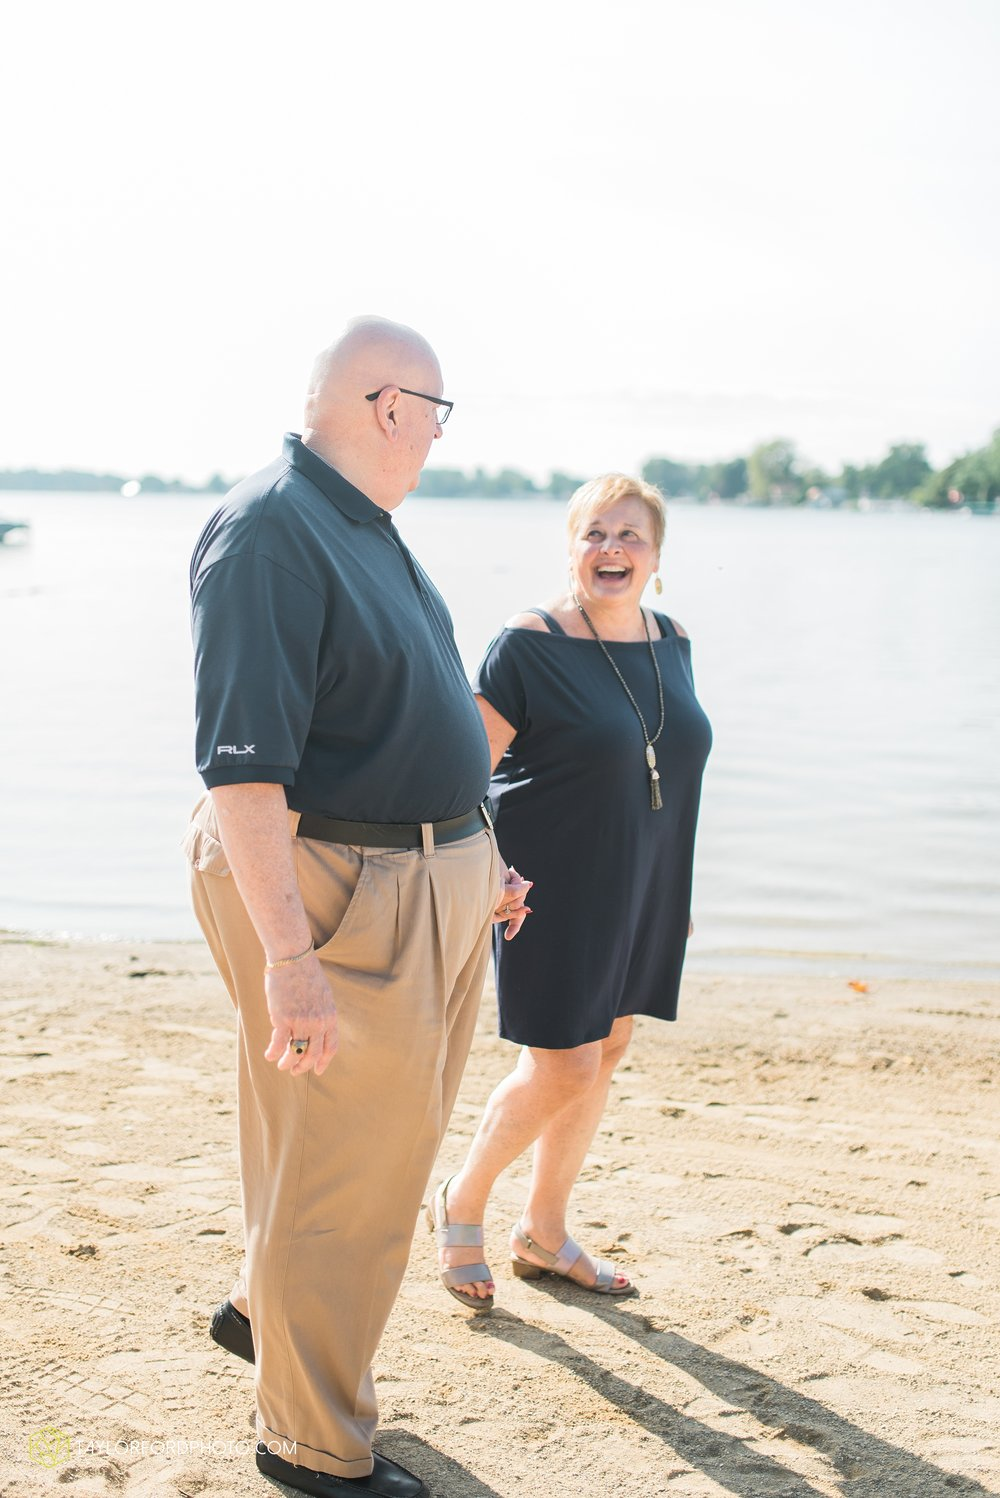 lake-wawasee-syracuse-indiana-taylor-ford-wedding-family-photography_1031.jpg